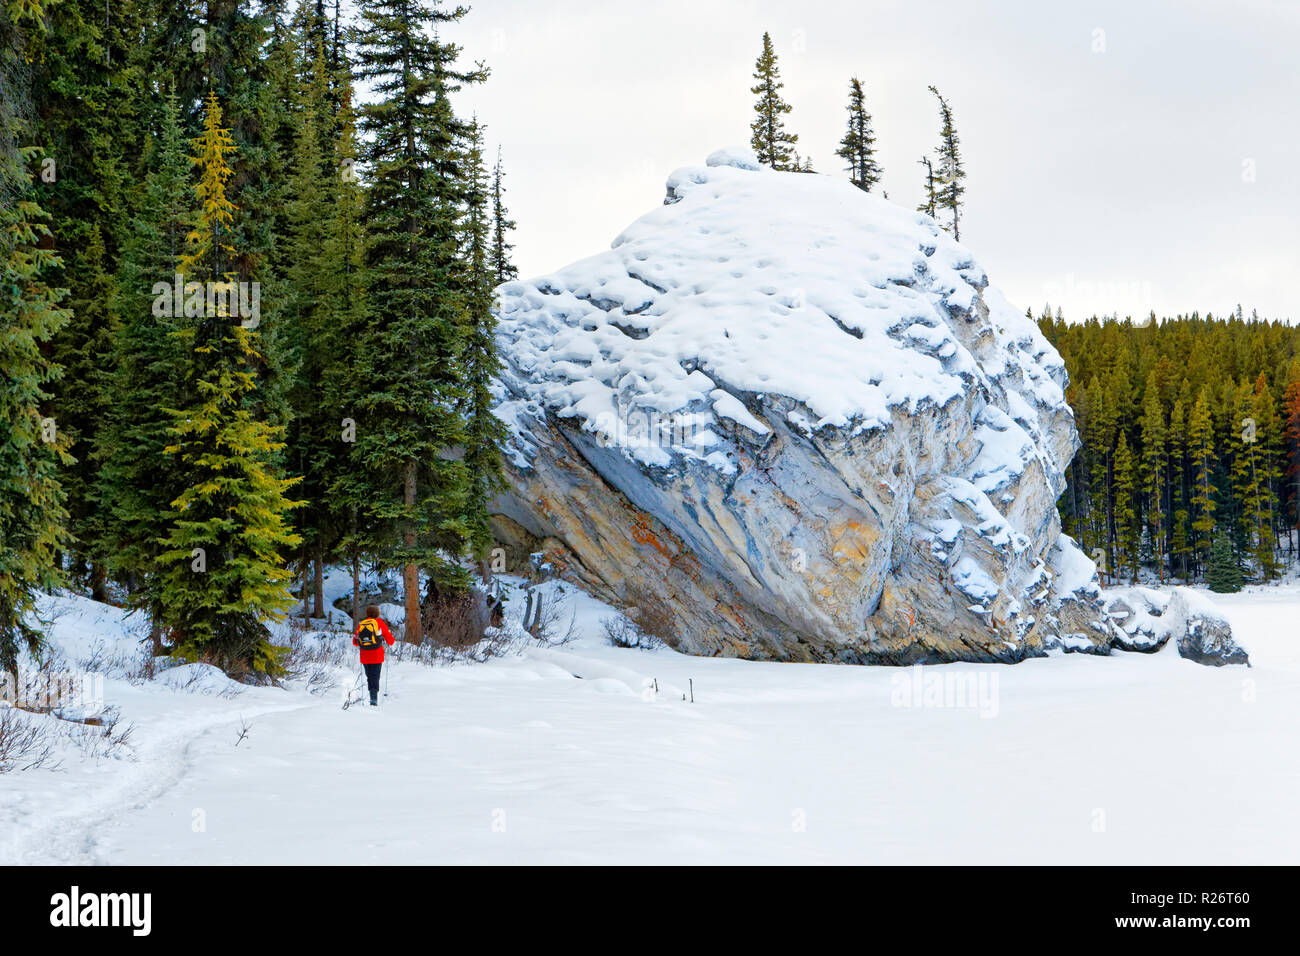 42,755.09703 woman person cold winter hike Maligne Lake with huge 30 ft tall rock boulder, Jasper National Park, hiking snowy winter conifer forest - Stock Image